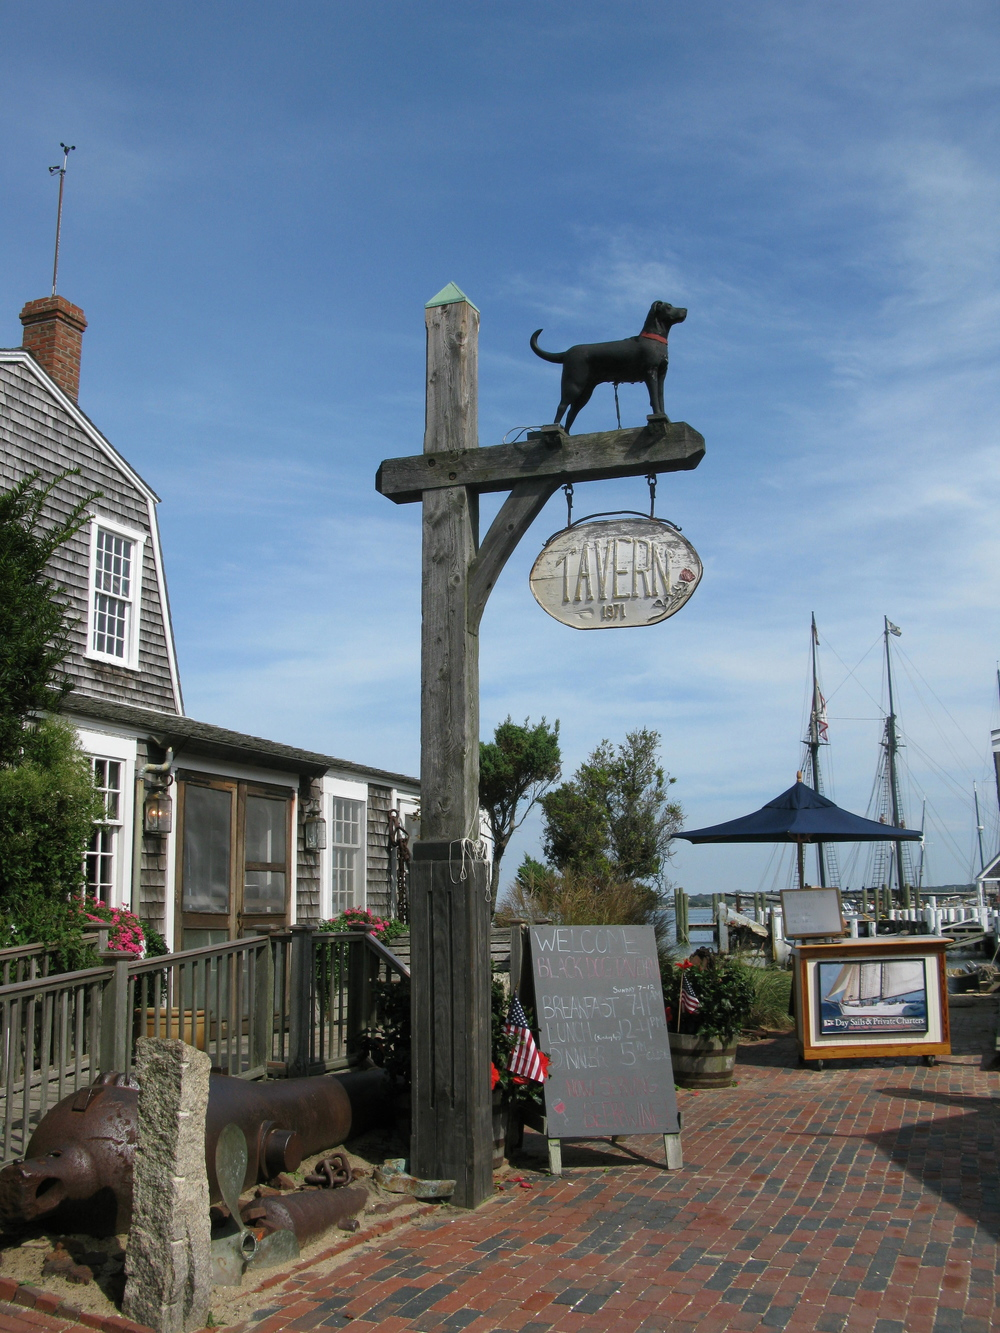 The Black Dog, Martha's Vineyard